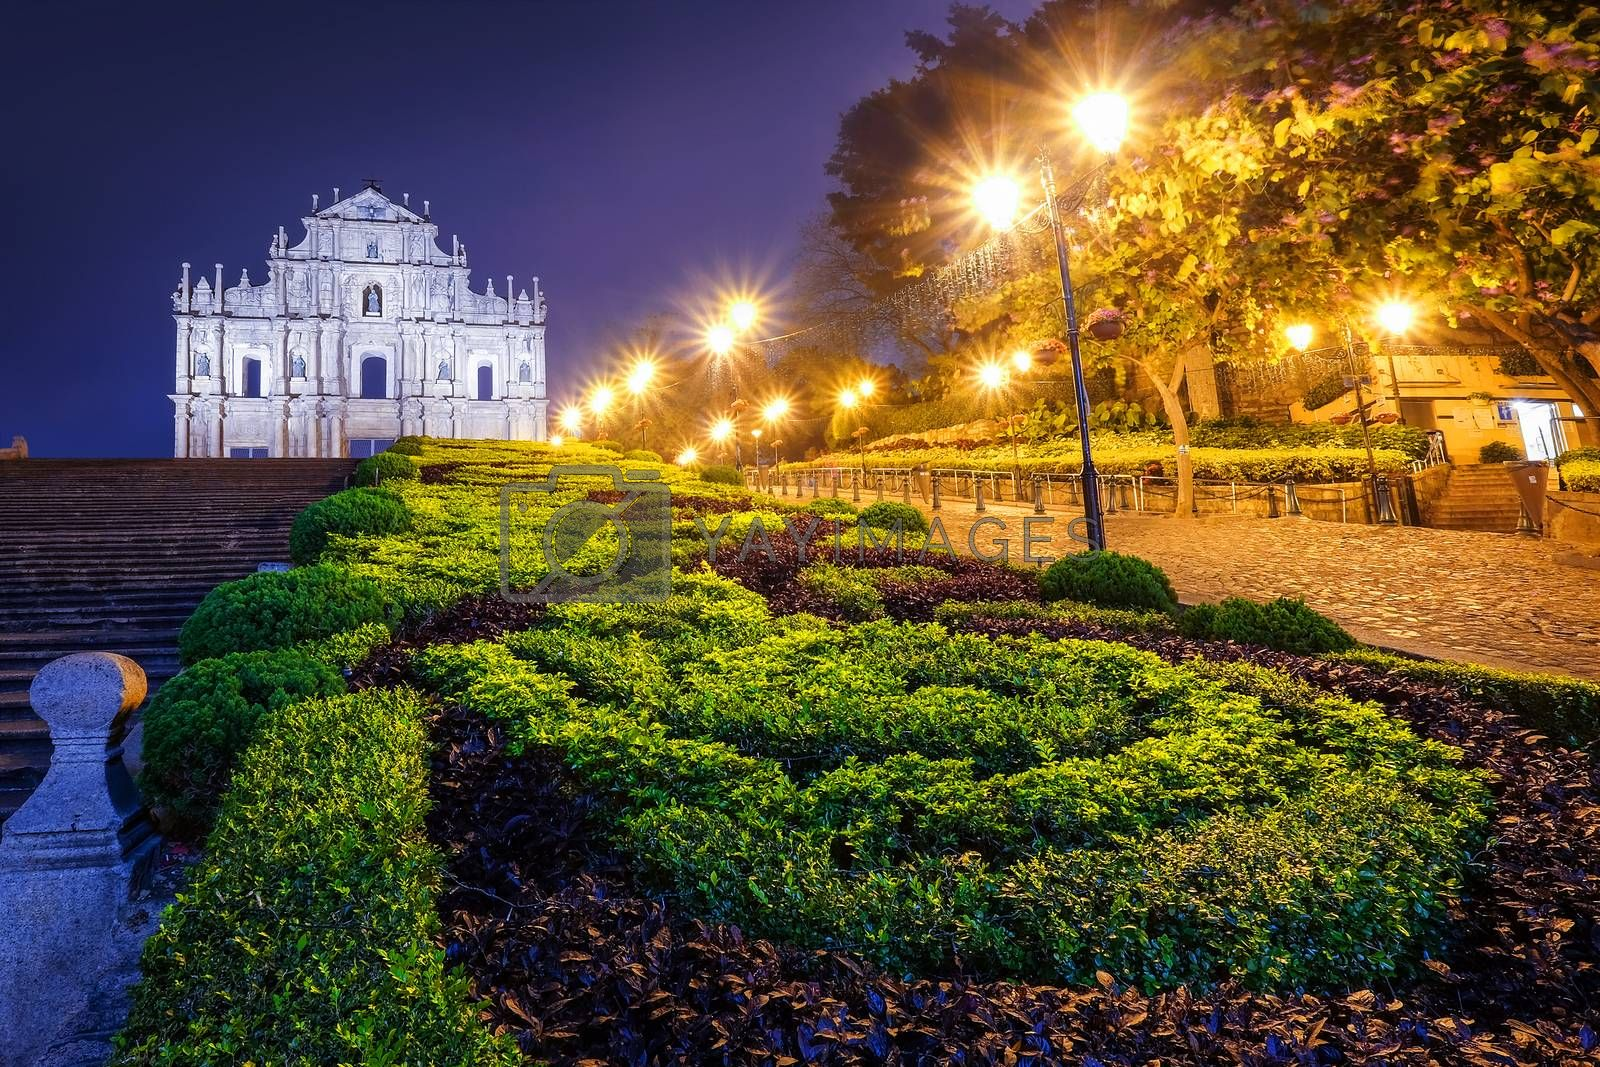 Ruins of St. Paul's, one of Macau's most famouse landmark and fabulous UNESCO World Heritage Site.